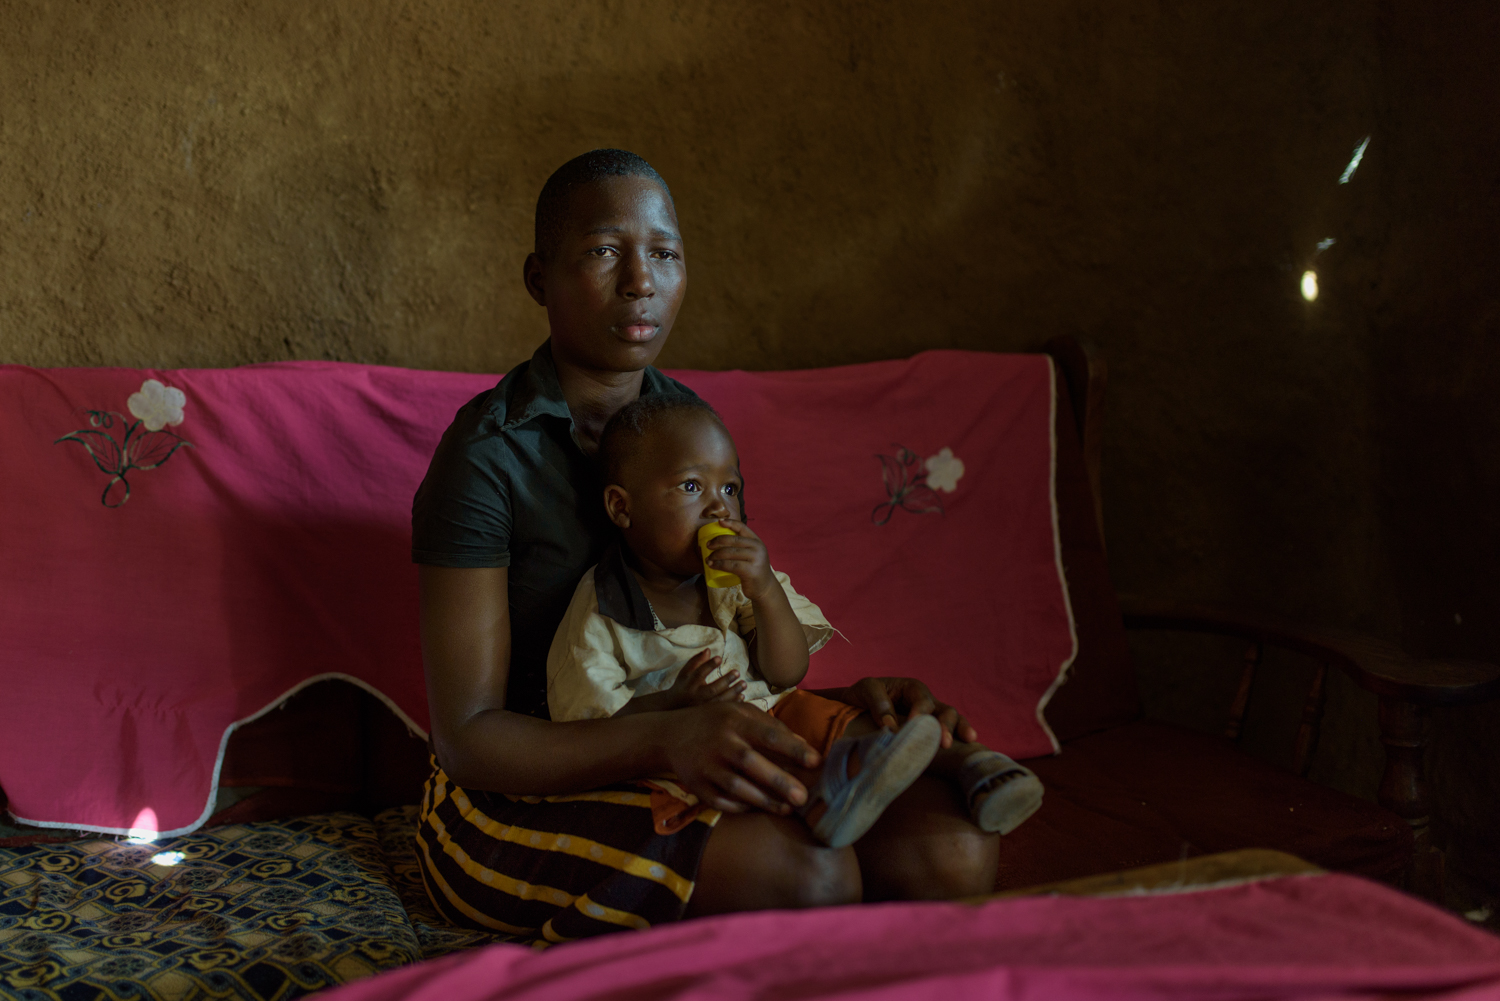 R.B., 17, with her three year old son B. at her parents home in Migori County. R. got pregnant after she finished primary school. Her parents were upset with her but pushed her to continue education. After giving birth to a son she went back to school. Her parents later told her that she was a burden and asked her to drop out of school. R. has been home since then and hopes to go back to school someday.